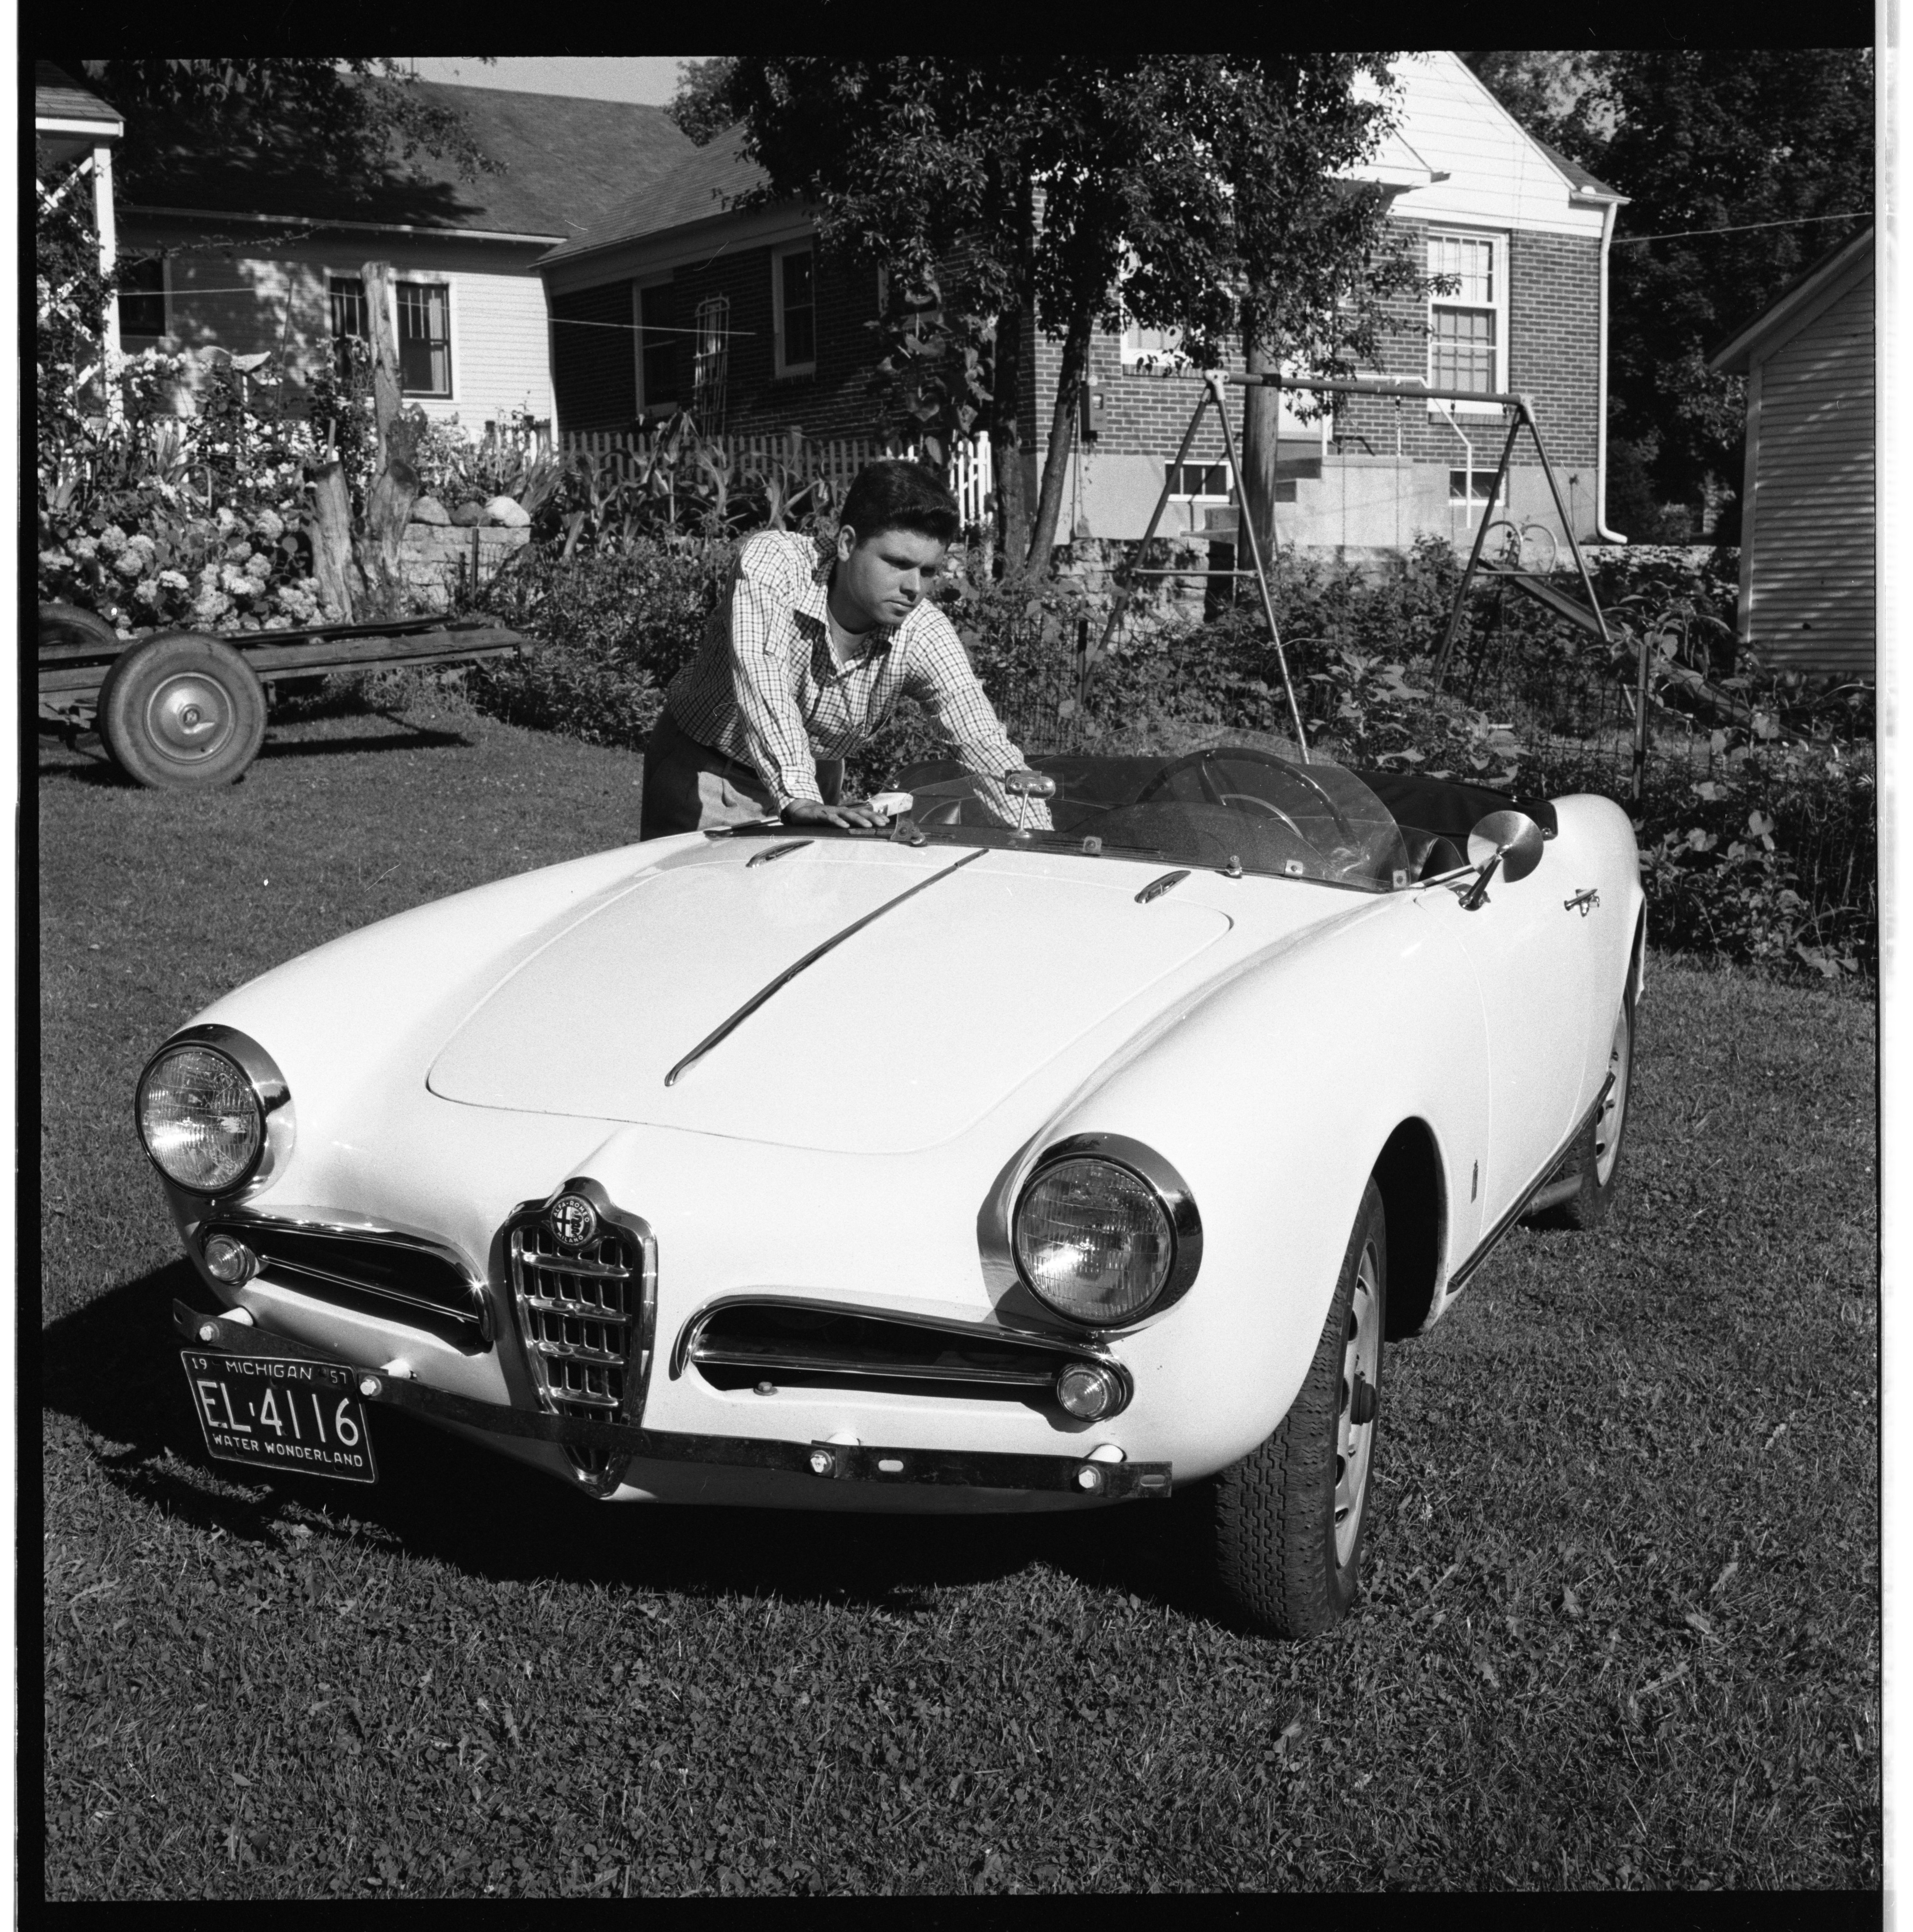 Bob Barsantee and his Alfa Romeo, August 1957 image